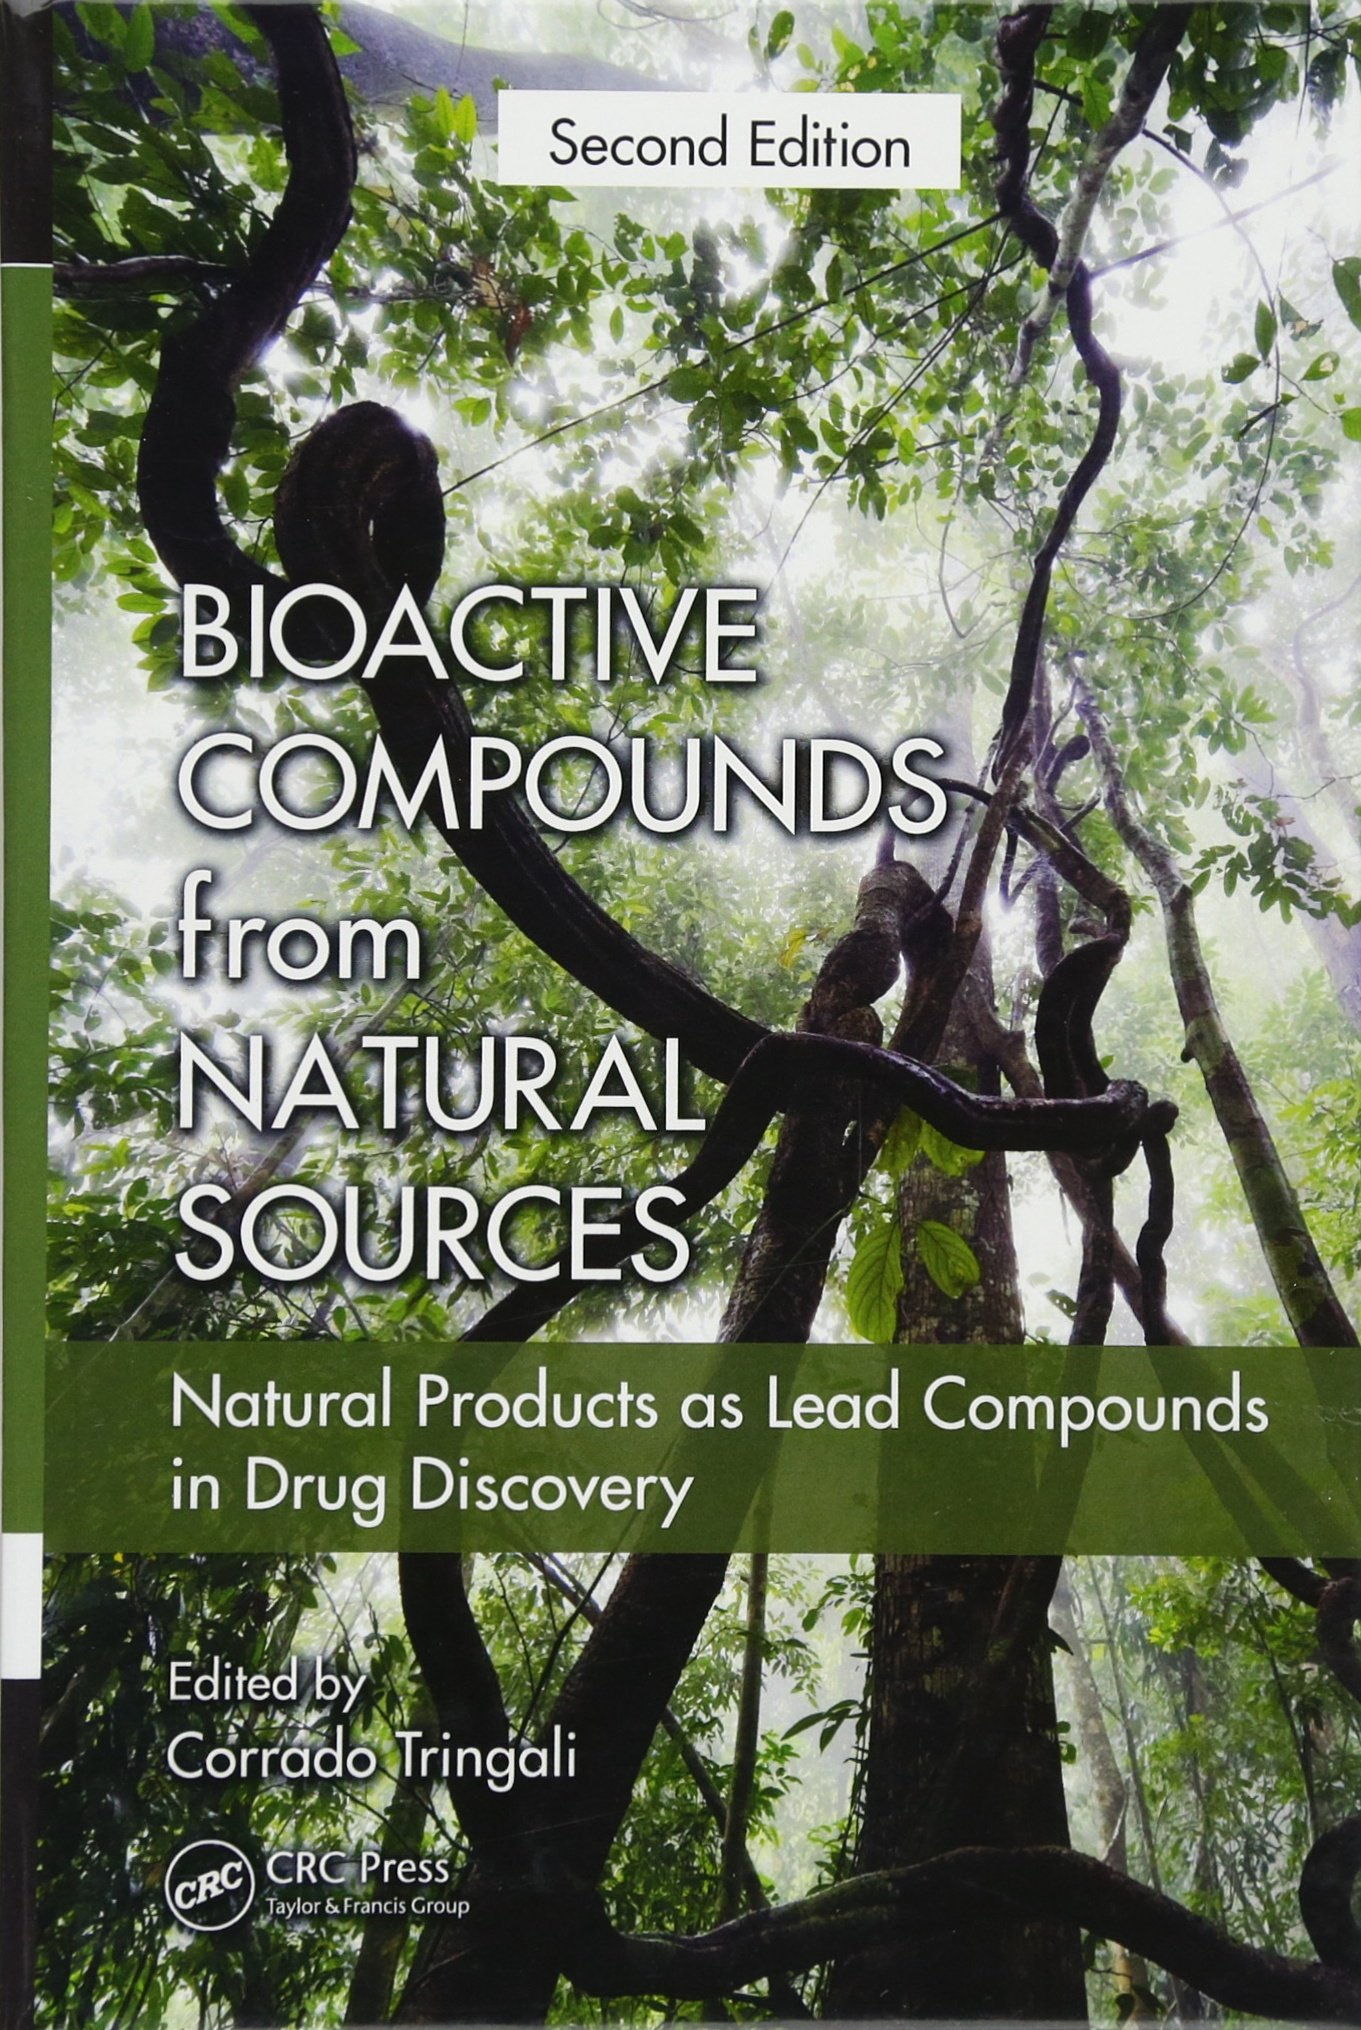 Bioactive Compounds from Natural Sources: Natural Products as Lead Compounds in Drug Discovery